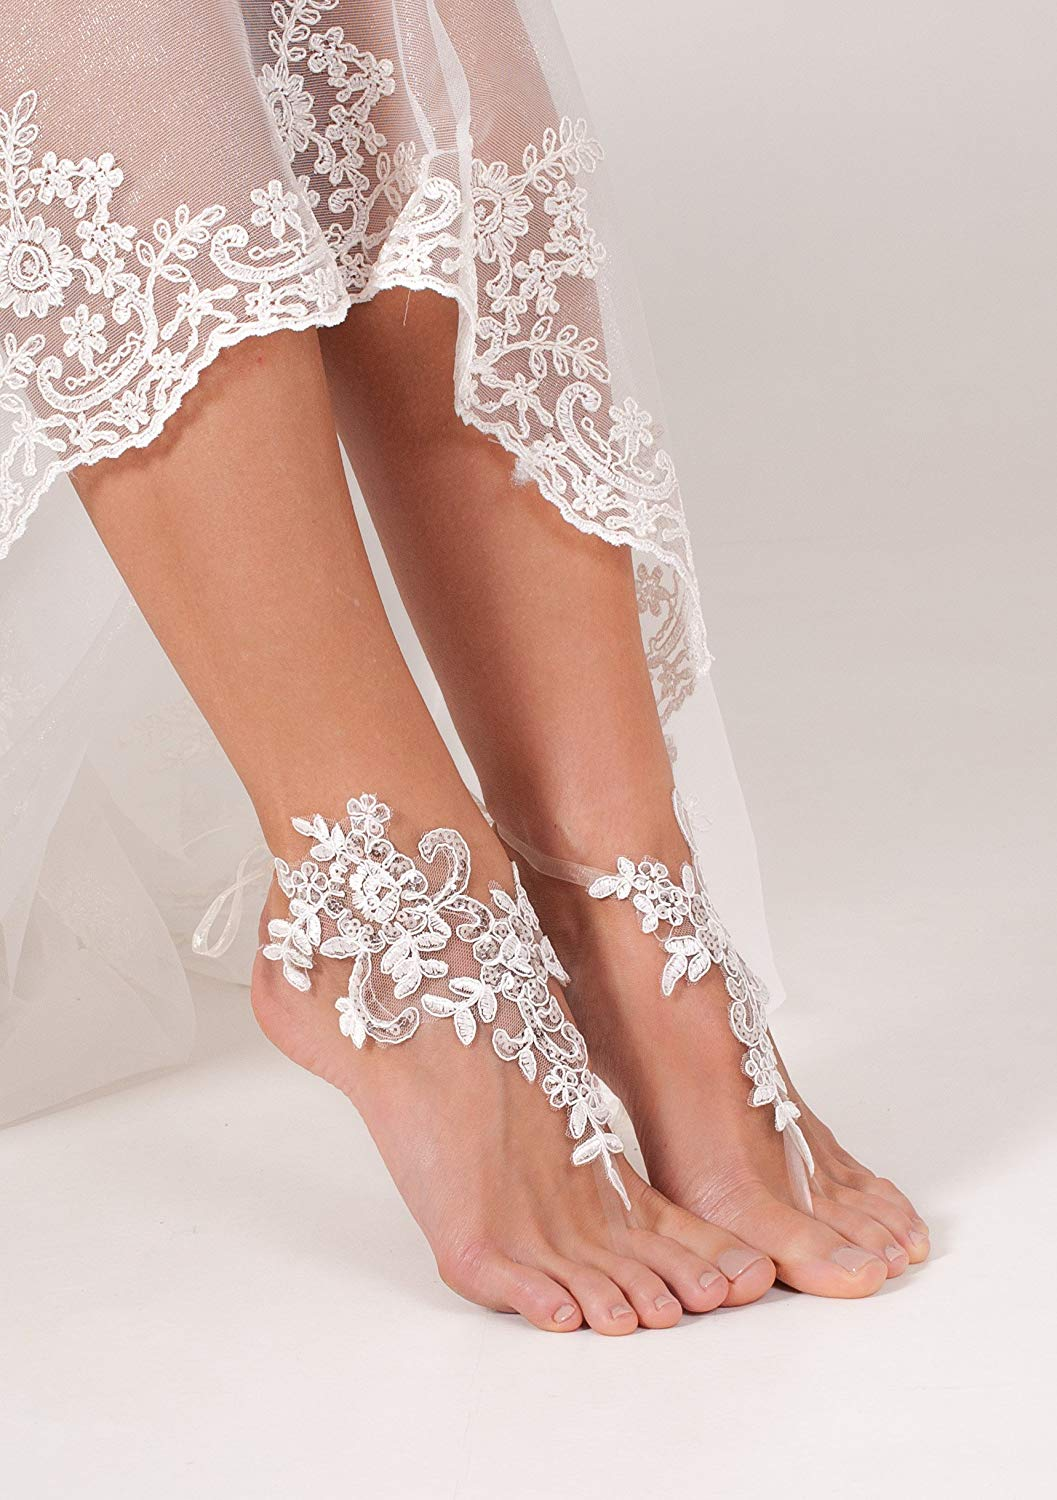 Lace Sequins Barefoot Sandals, Bridal accessory, Nude shoes, Foot thongs, French Lace, Sexy, Beach wedding Anklet, bottomless shoes